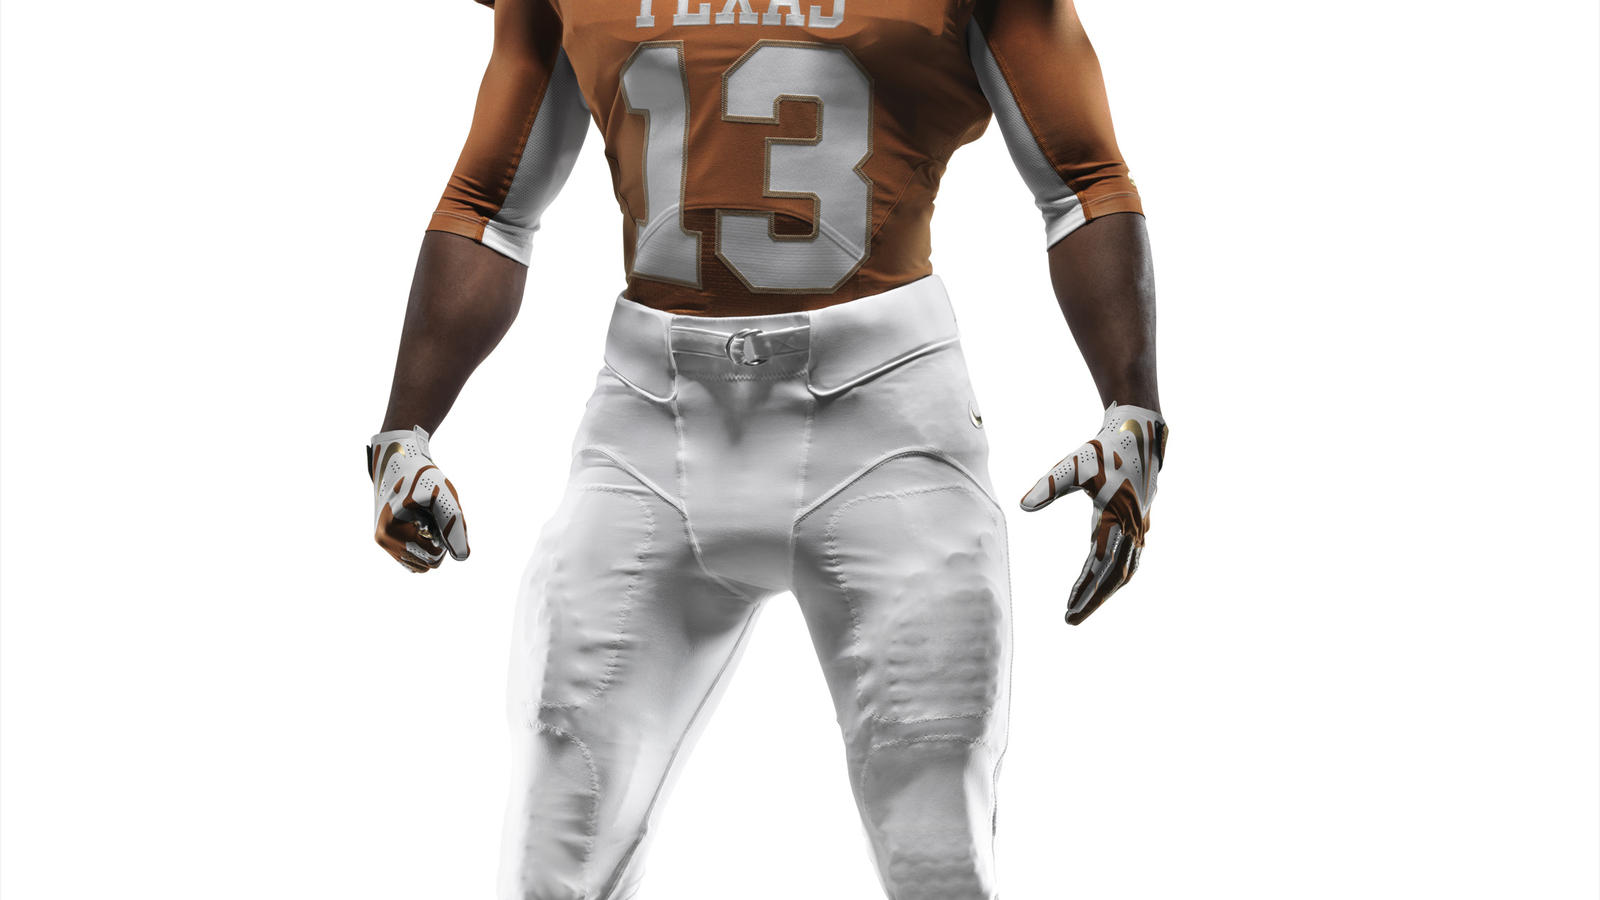 Ncaa Fb13 Uniforms Texas Full Uniform Front Base 0000